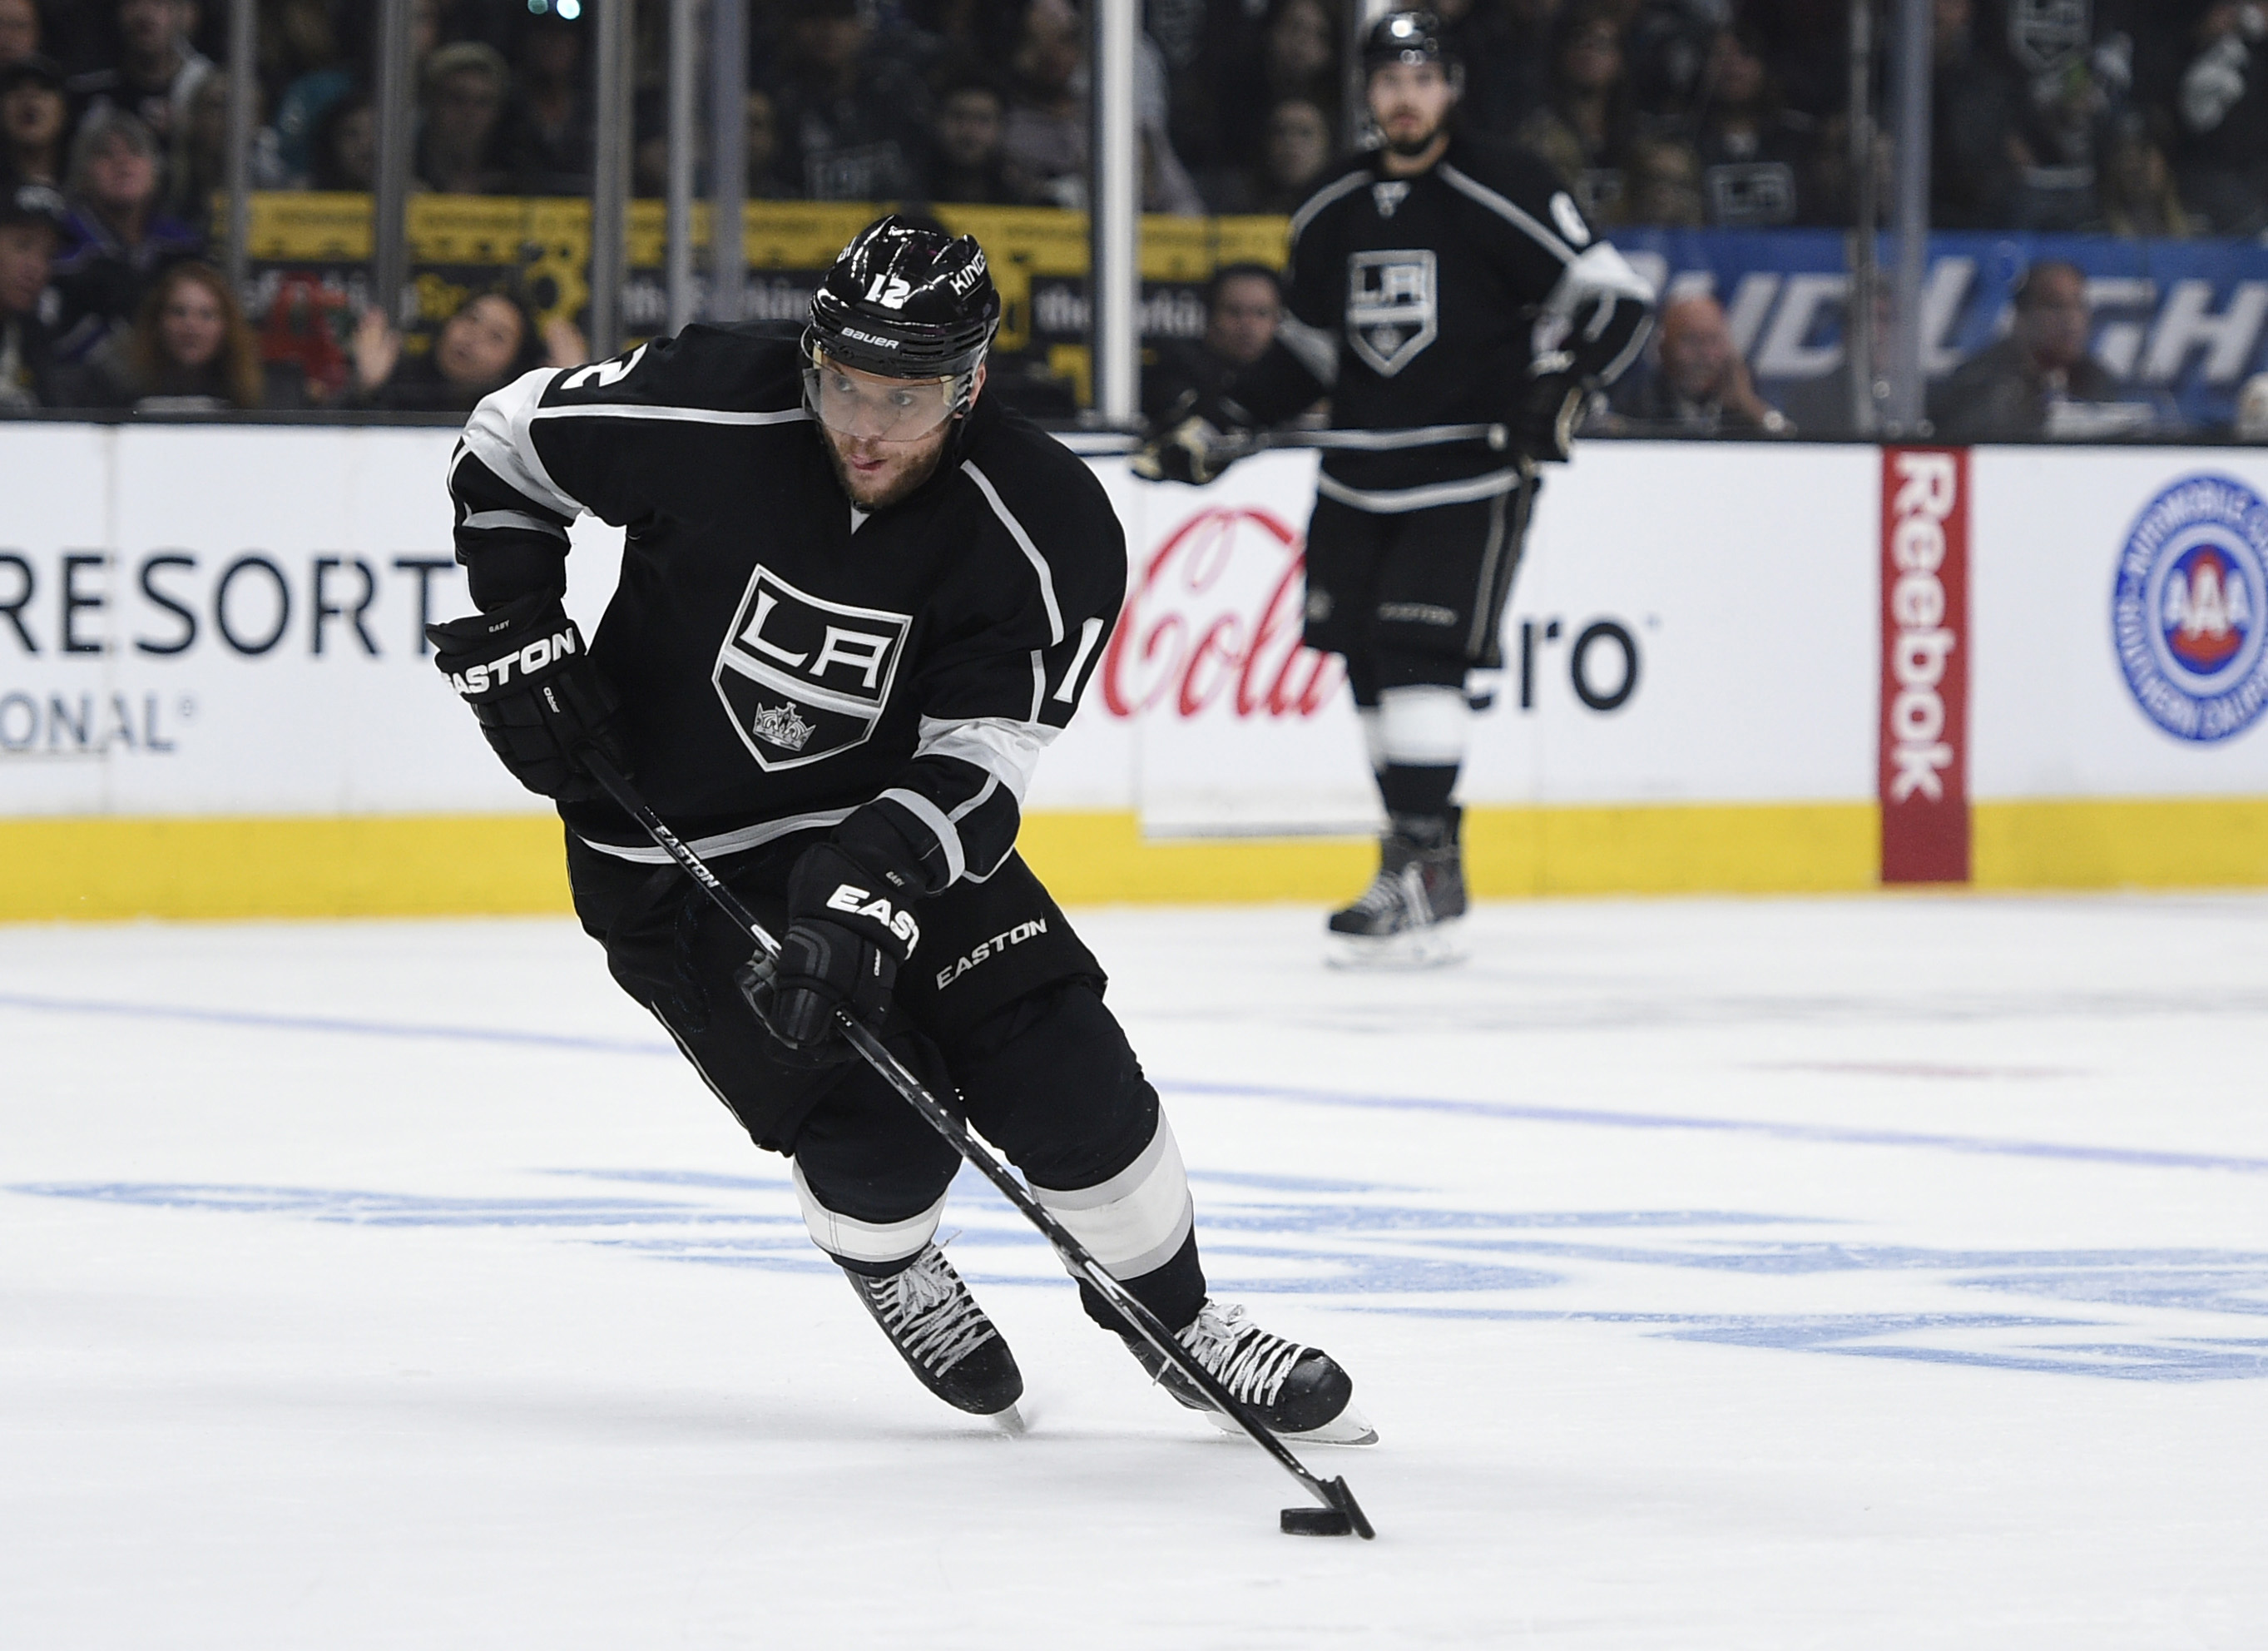 9255934-nhl-stanley-cup-playoffs-san-jose-sharks-at-los-angeles-kings